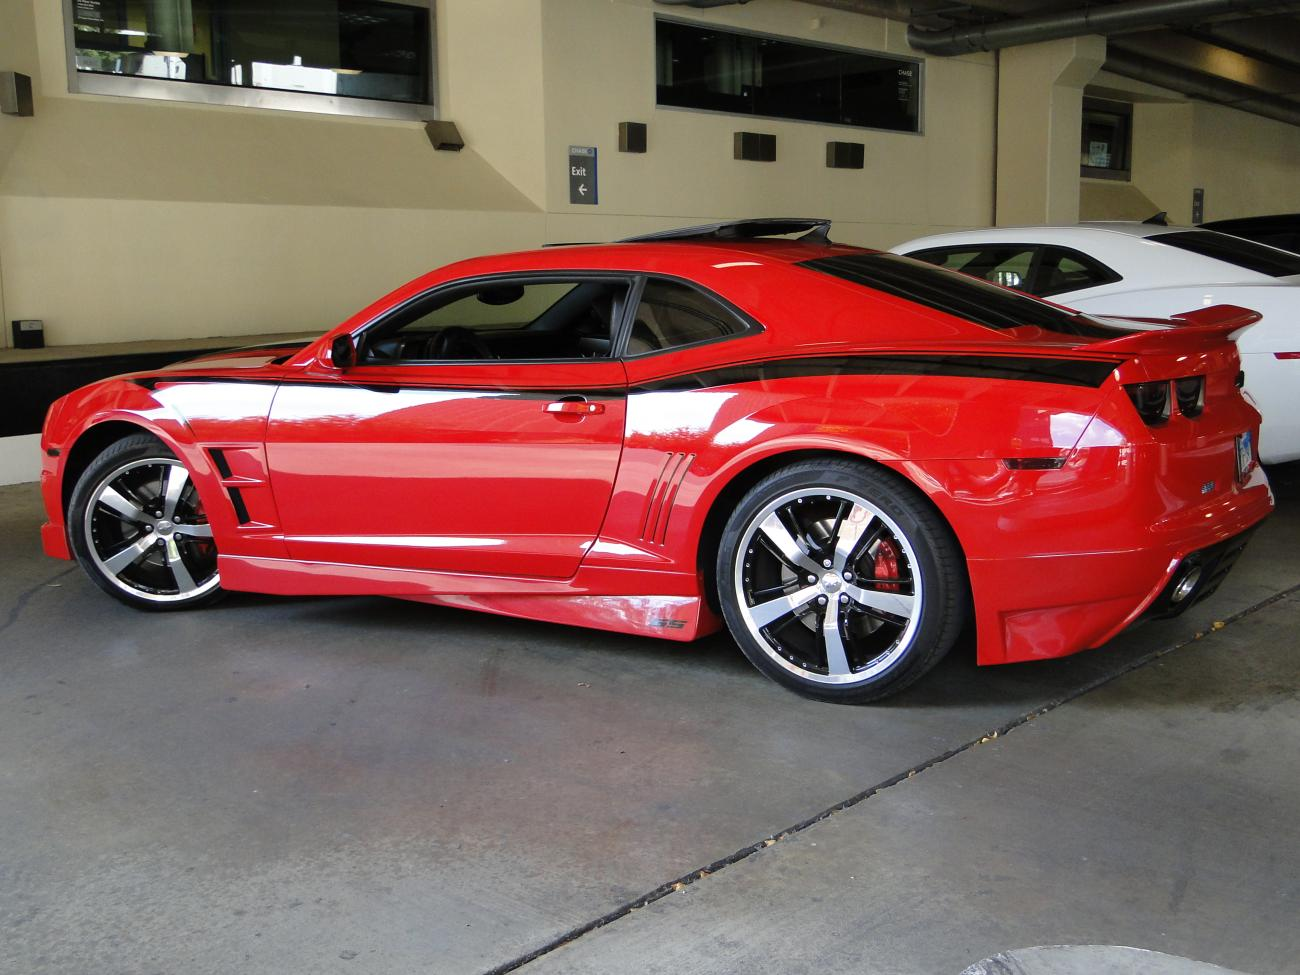 Receive updates on the best of TheTruthAboutCars.com